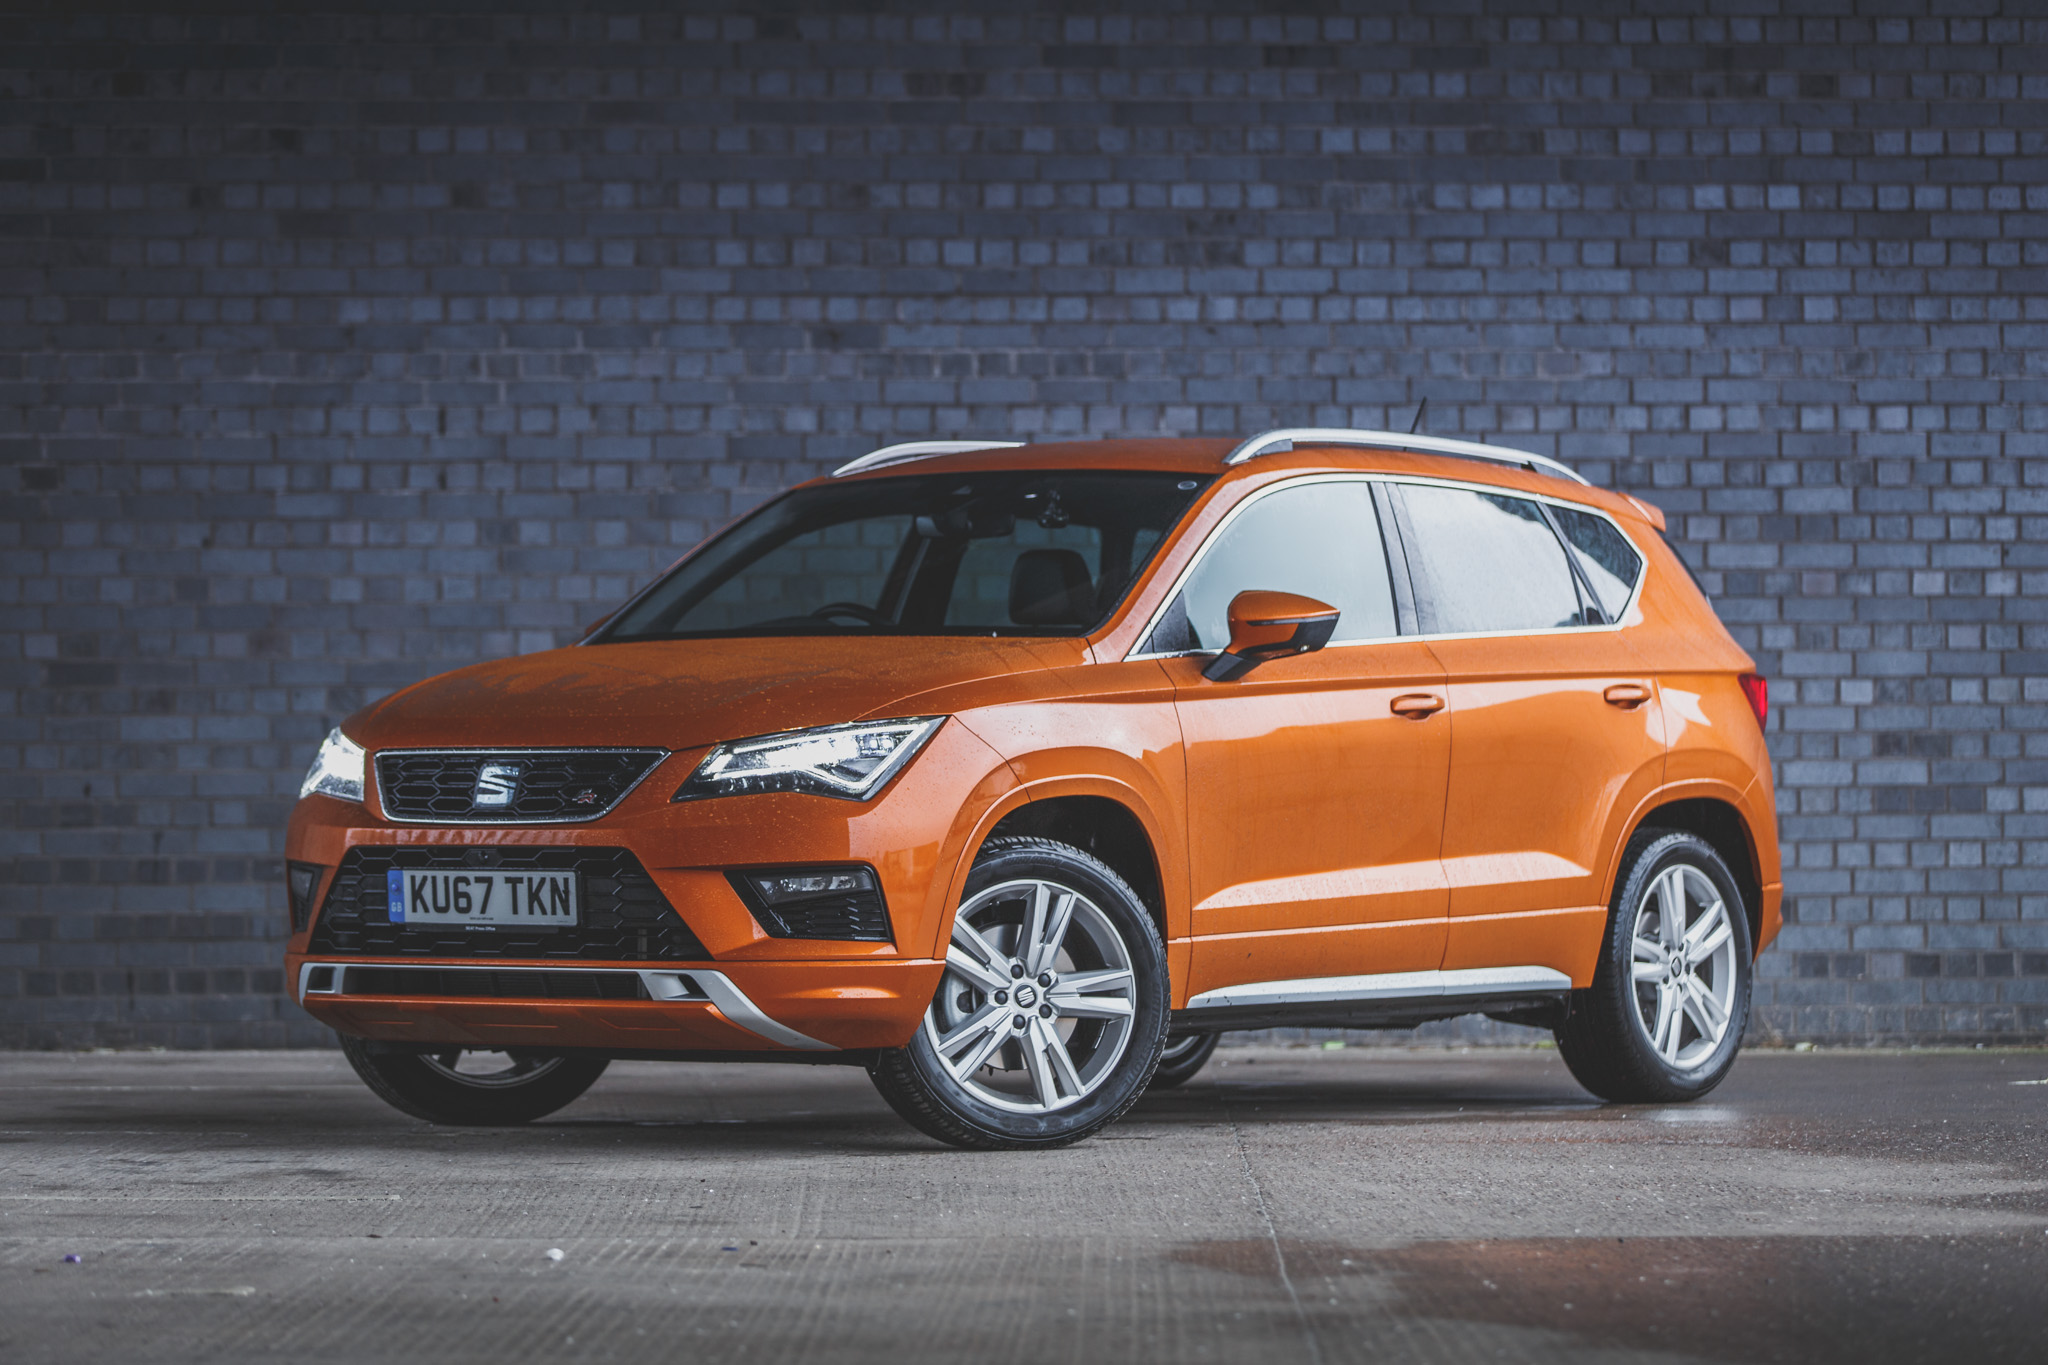 2017 Seat Ateca Fr 2 0 Tsi 4drive Review Worth The Premium